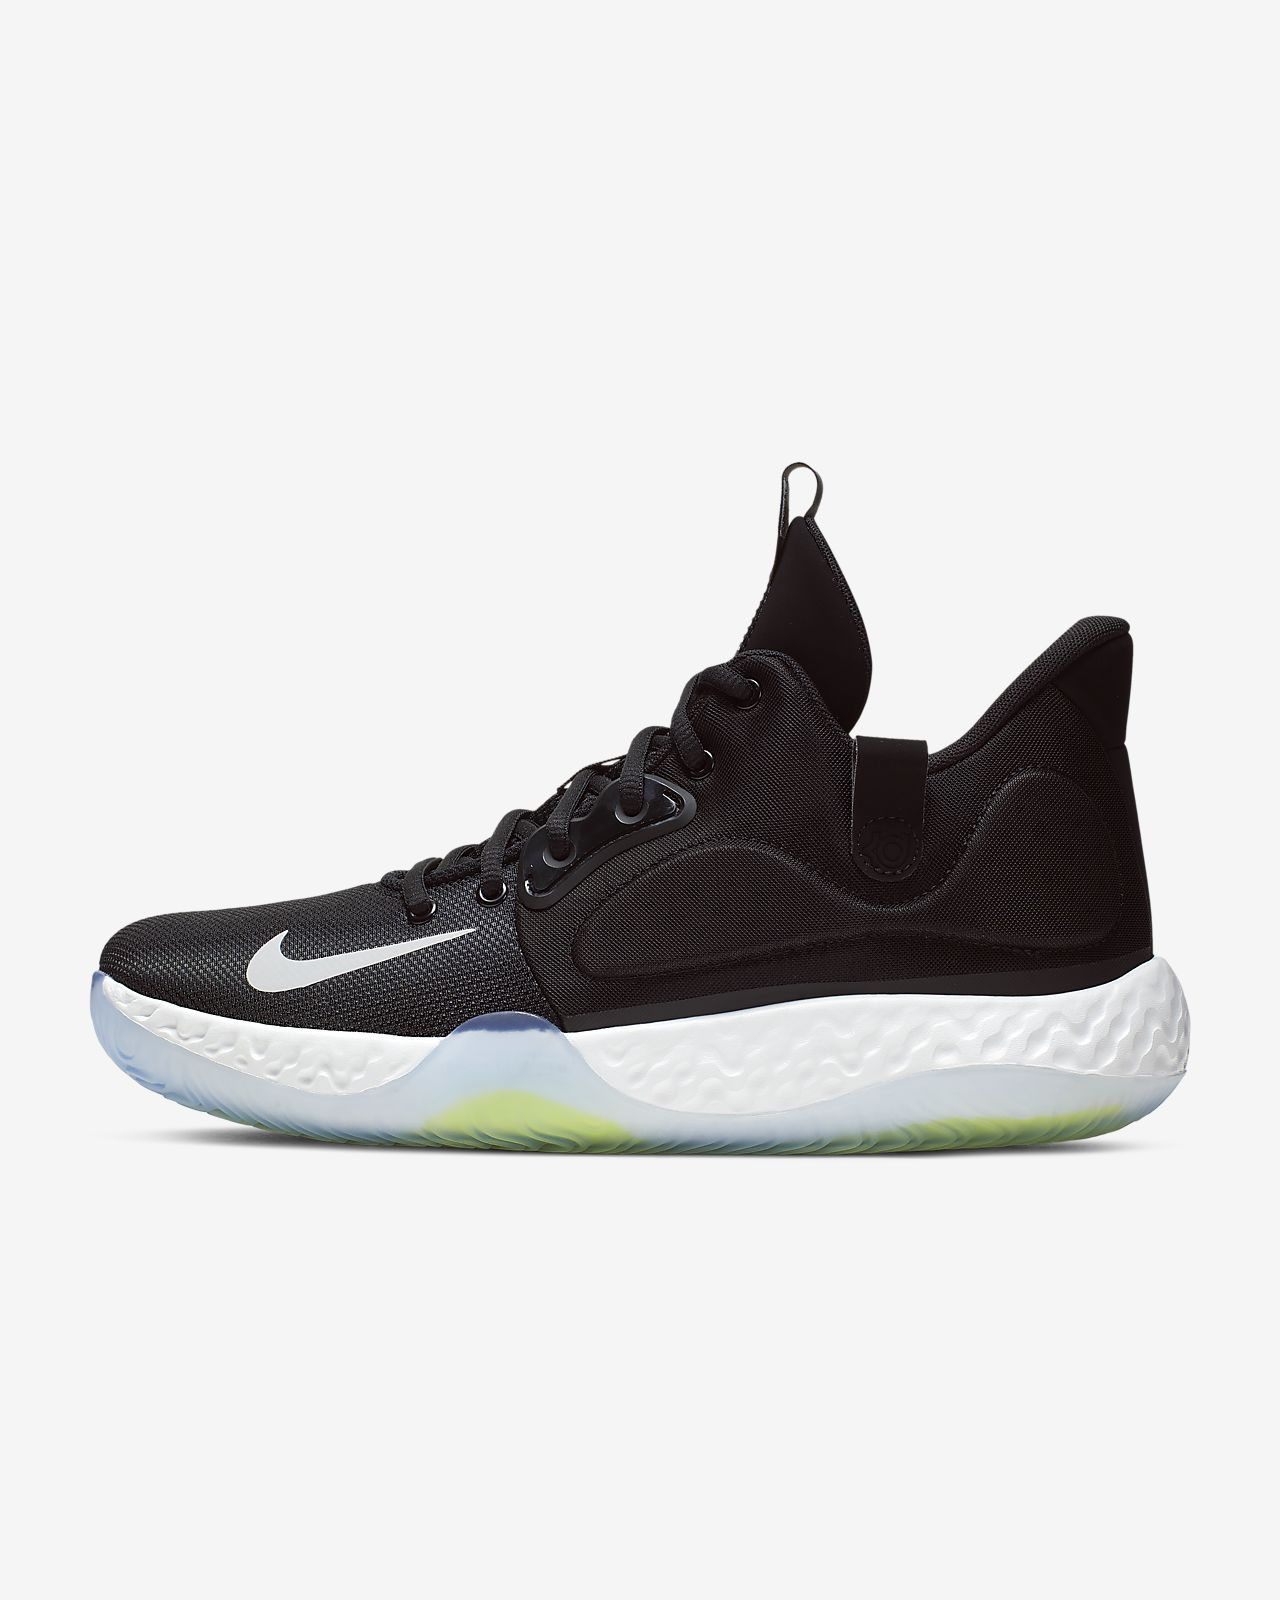 kd trey 5 4 Kevin Durant shoes on sale